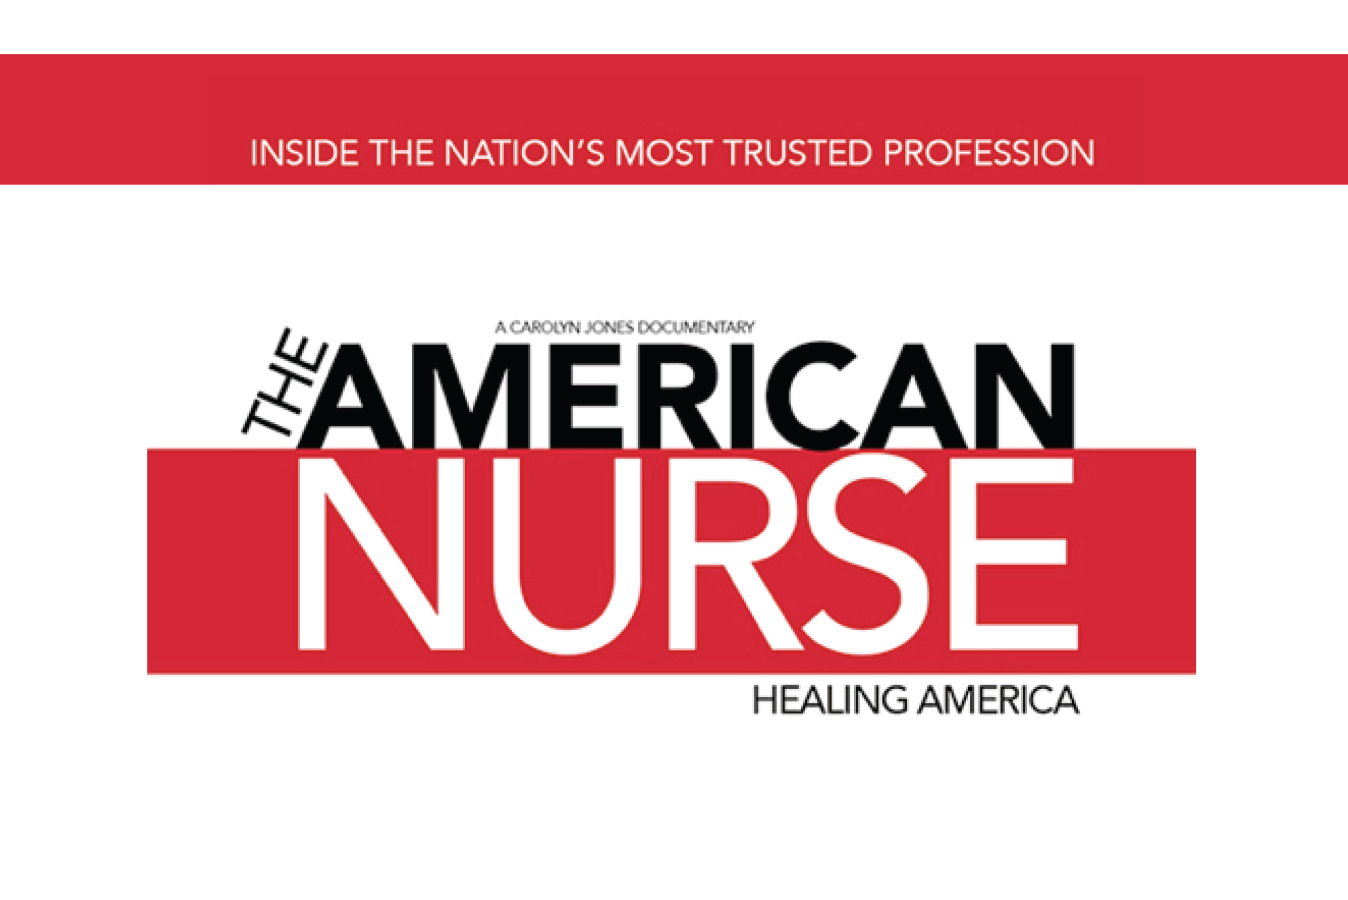 American Nurse Movie Highlights Impact of Lives Nurses Touch